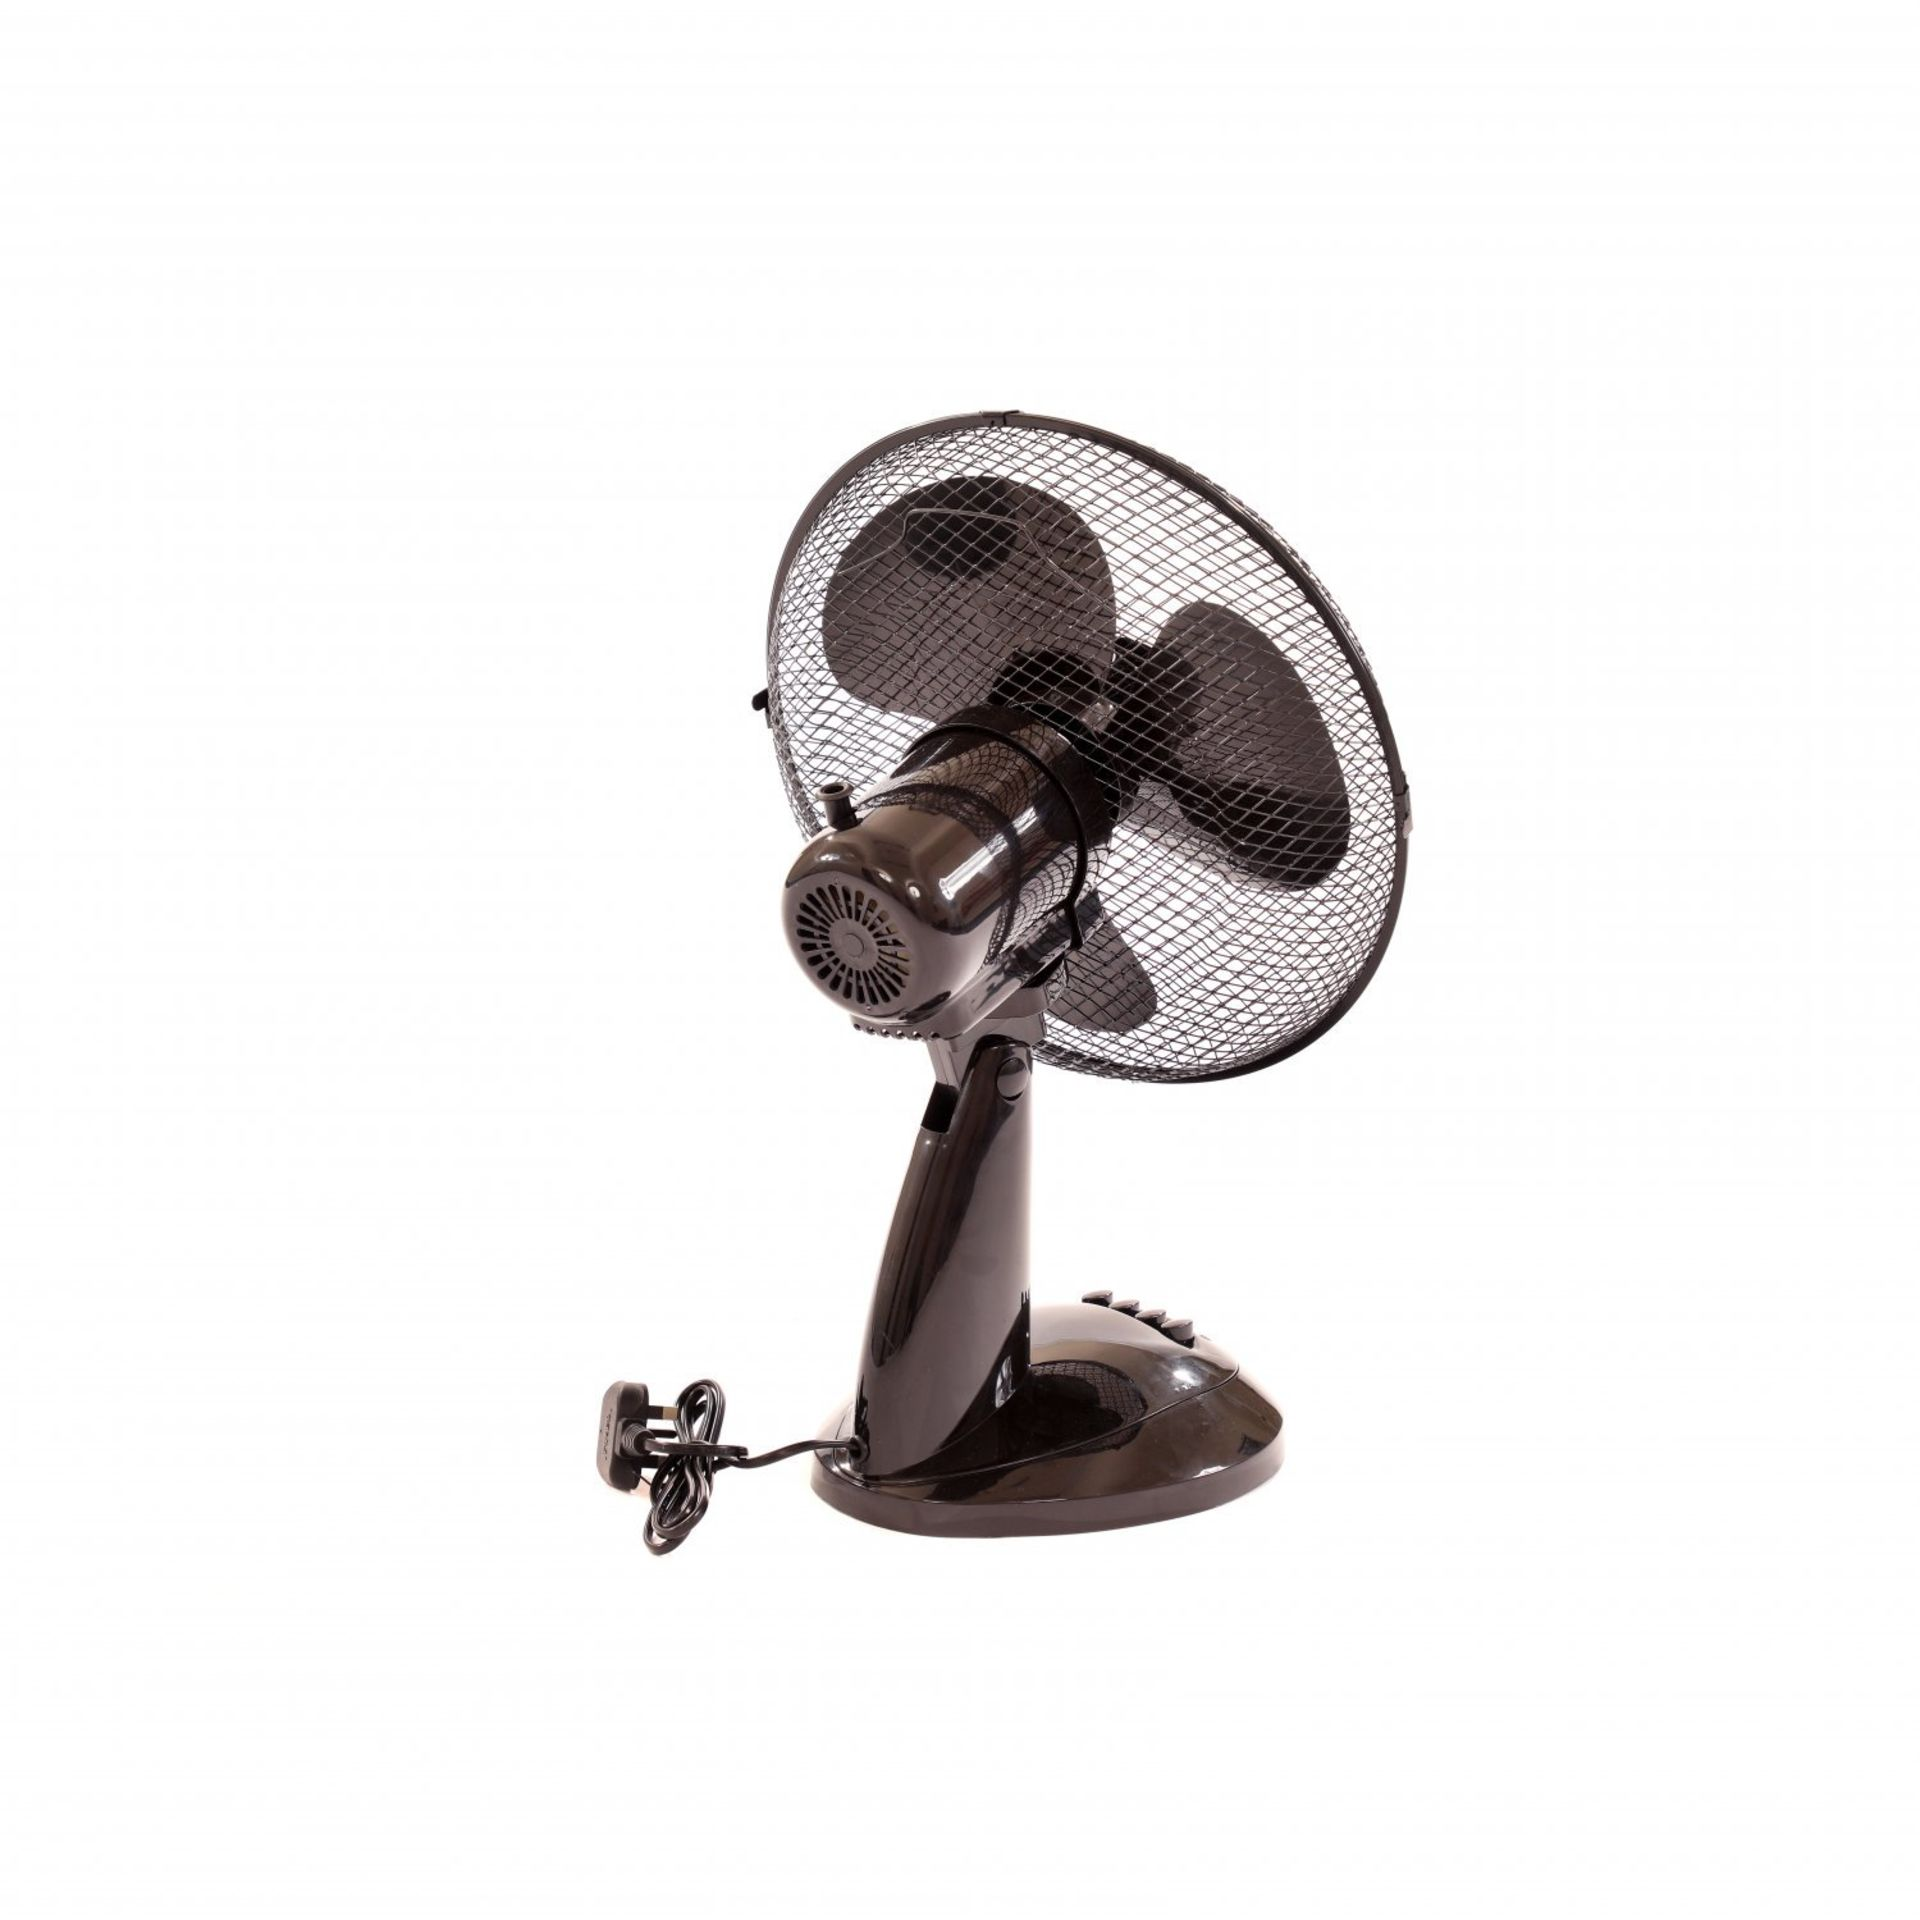 "Lot 168 - (RL112) 12"" 3 Speed Oscillating Black Electric Desk Home Office Fan Stay cool this year with..."